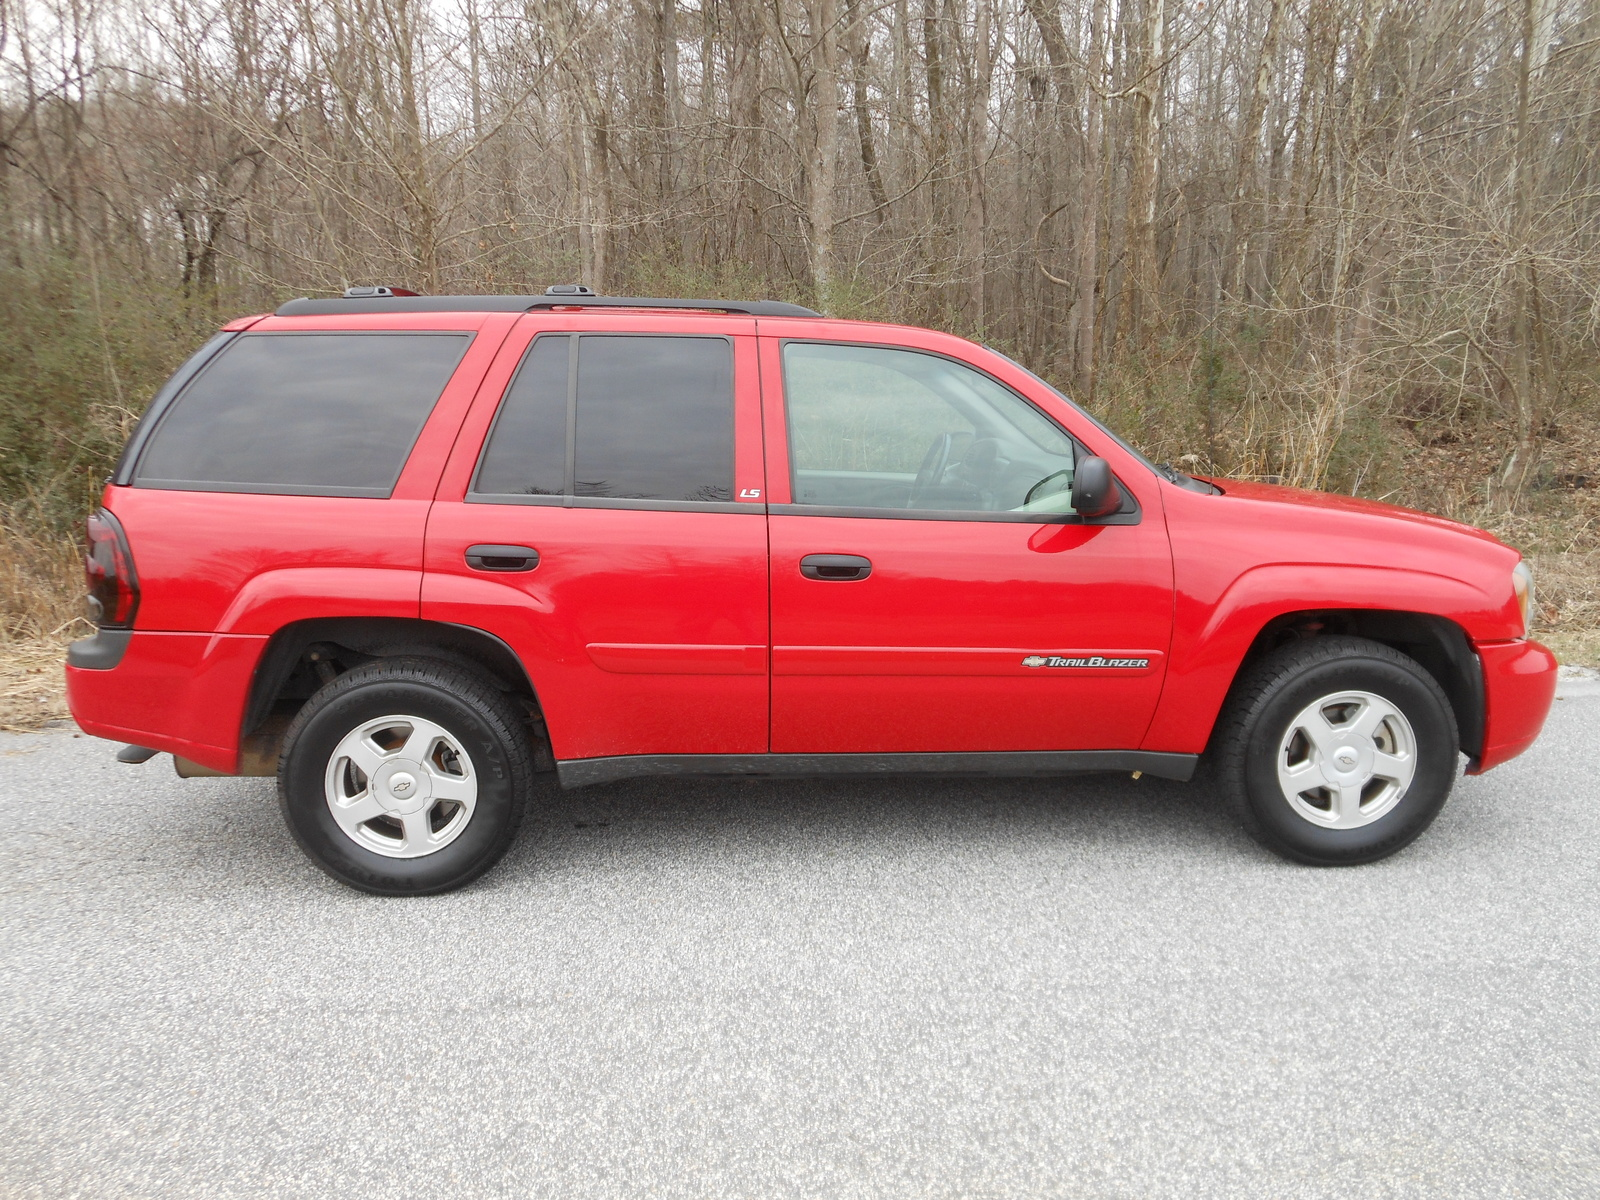 2002 chevrolet trailblazer pictures cargurus. Cars Review. Best American Auto & Cars Review